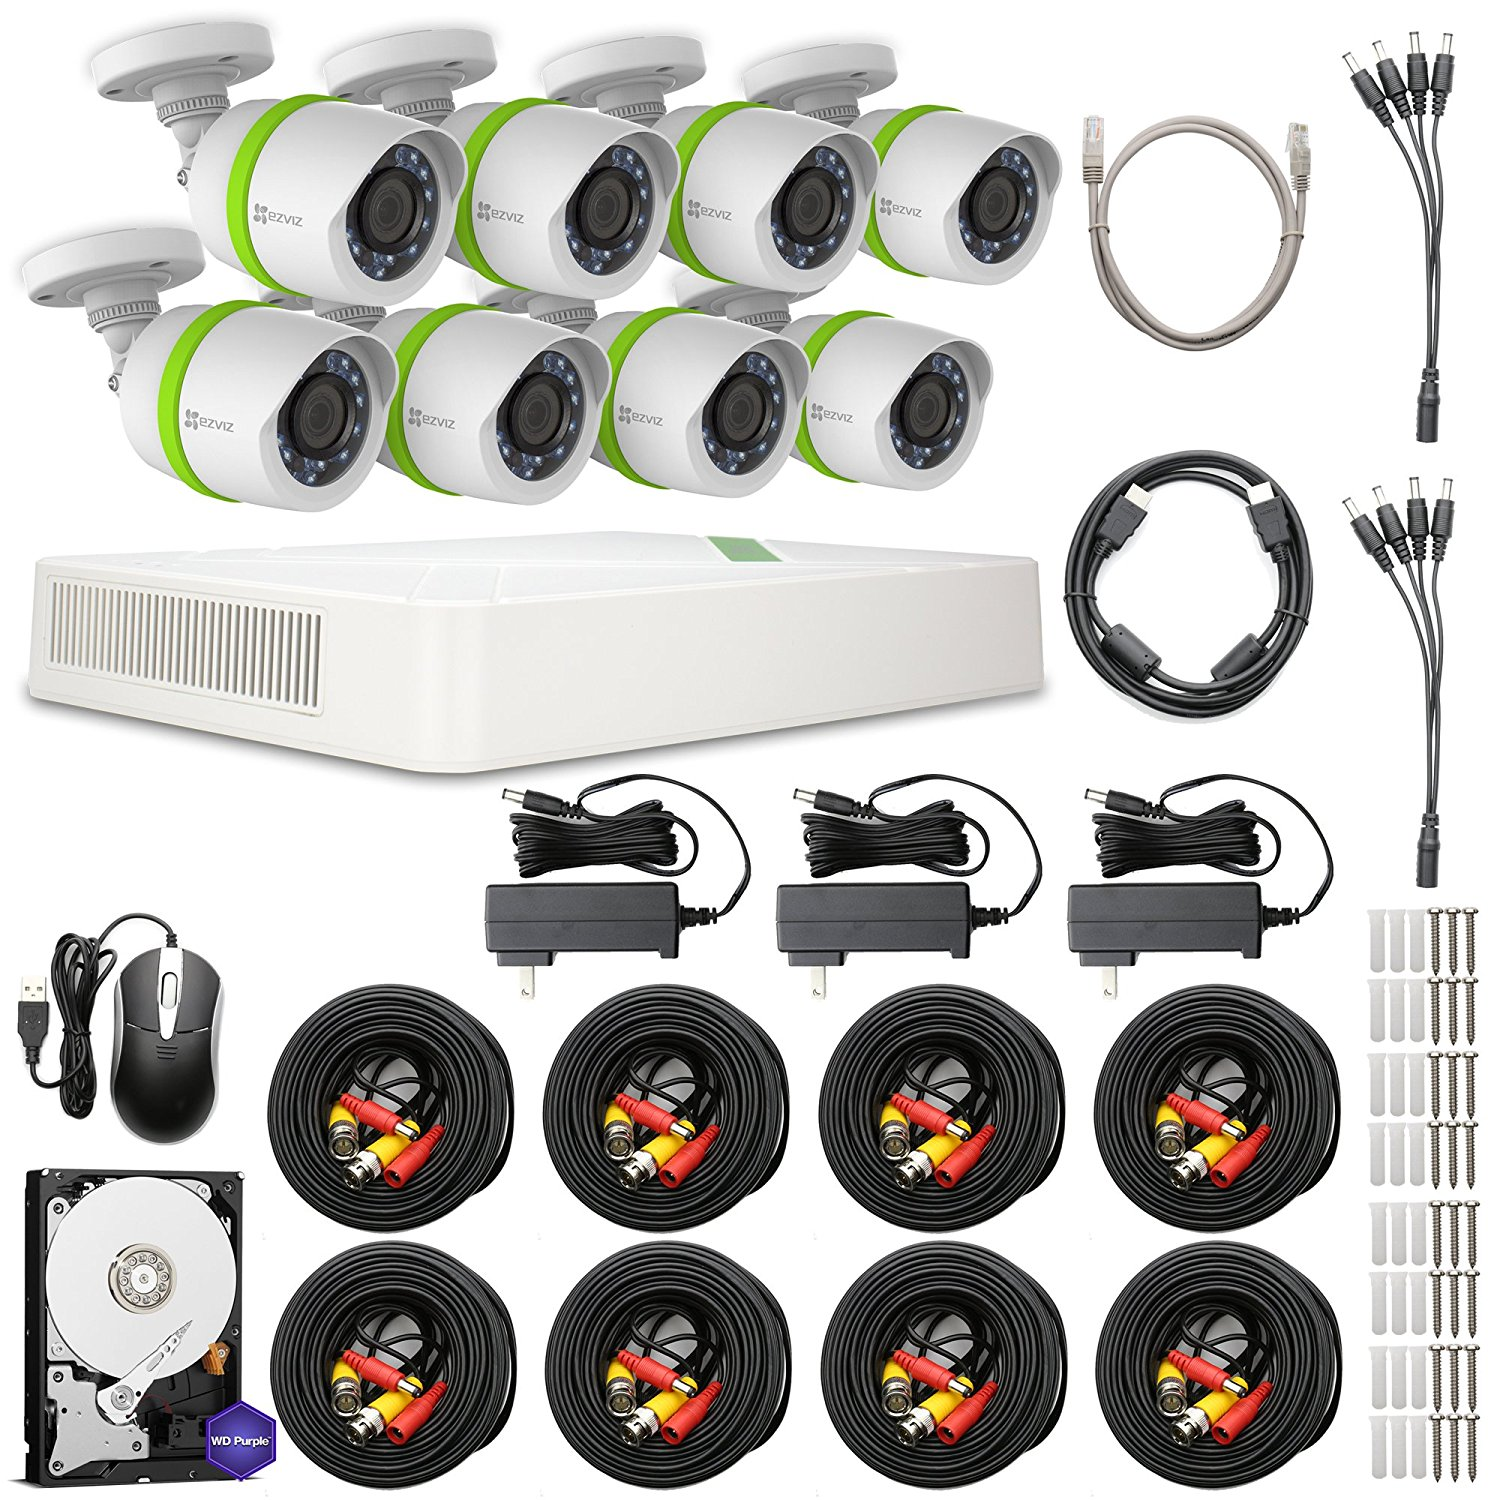 EZVIZ 720p Outdoor Security Camera System, 8 HD Weatherproof Cameras, 16 Channels with 2TB DVR